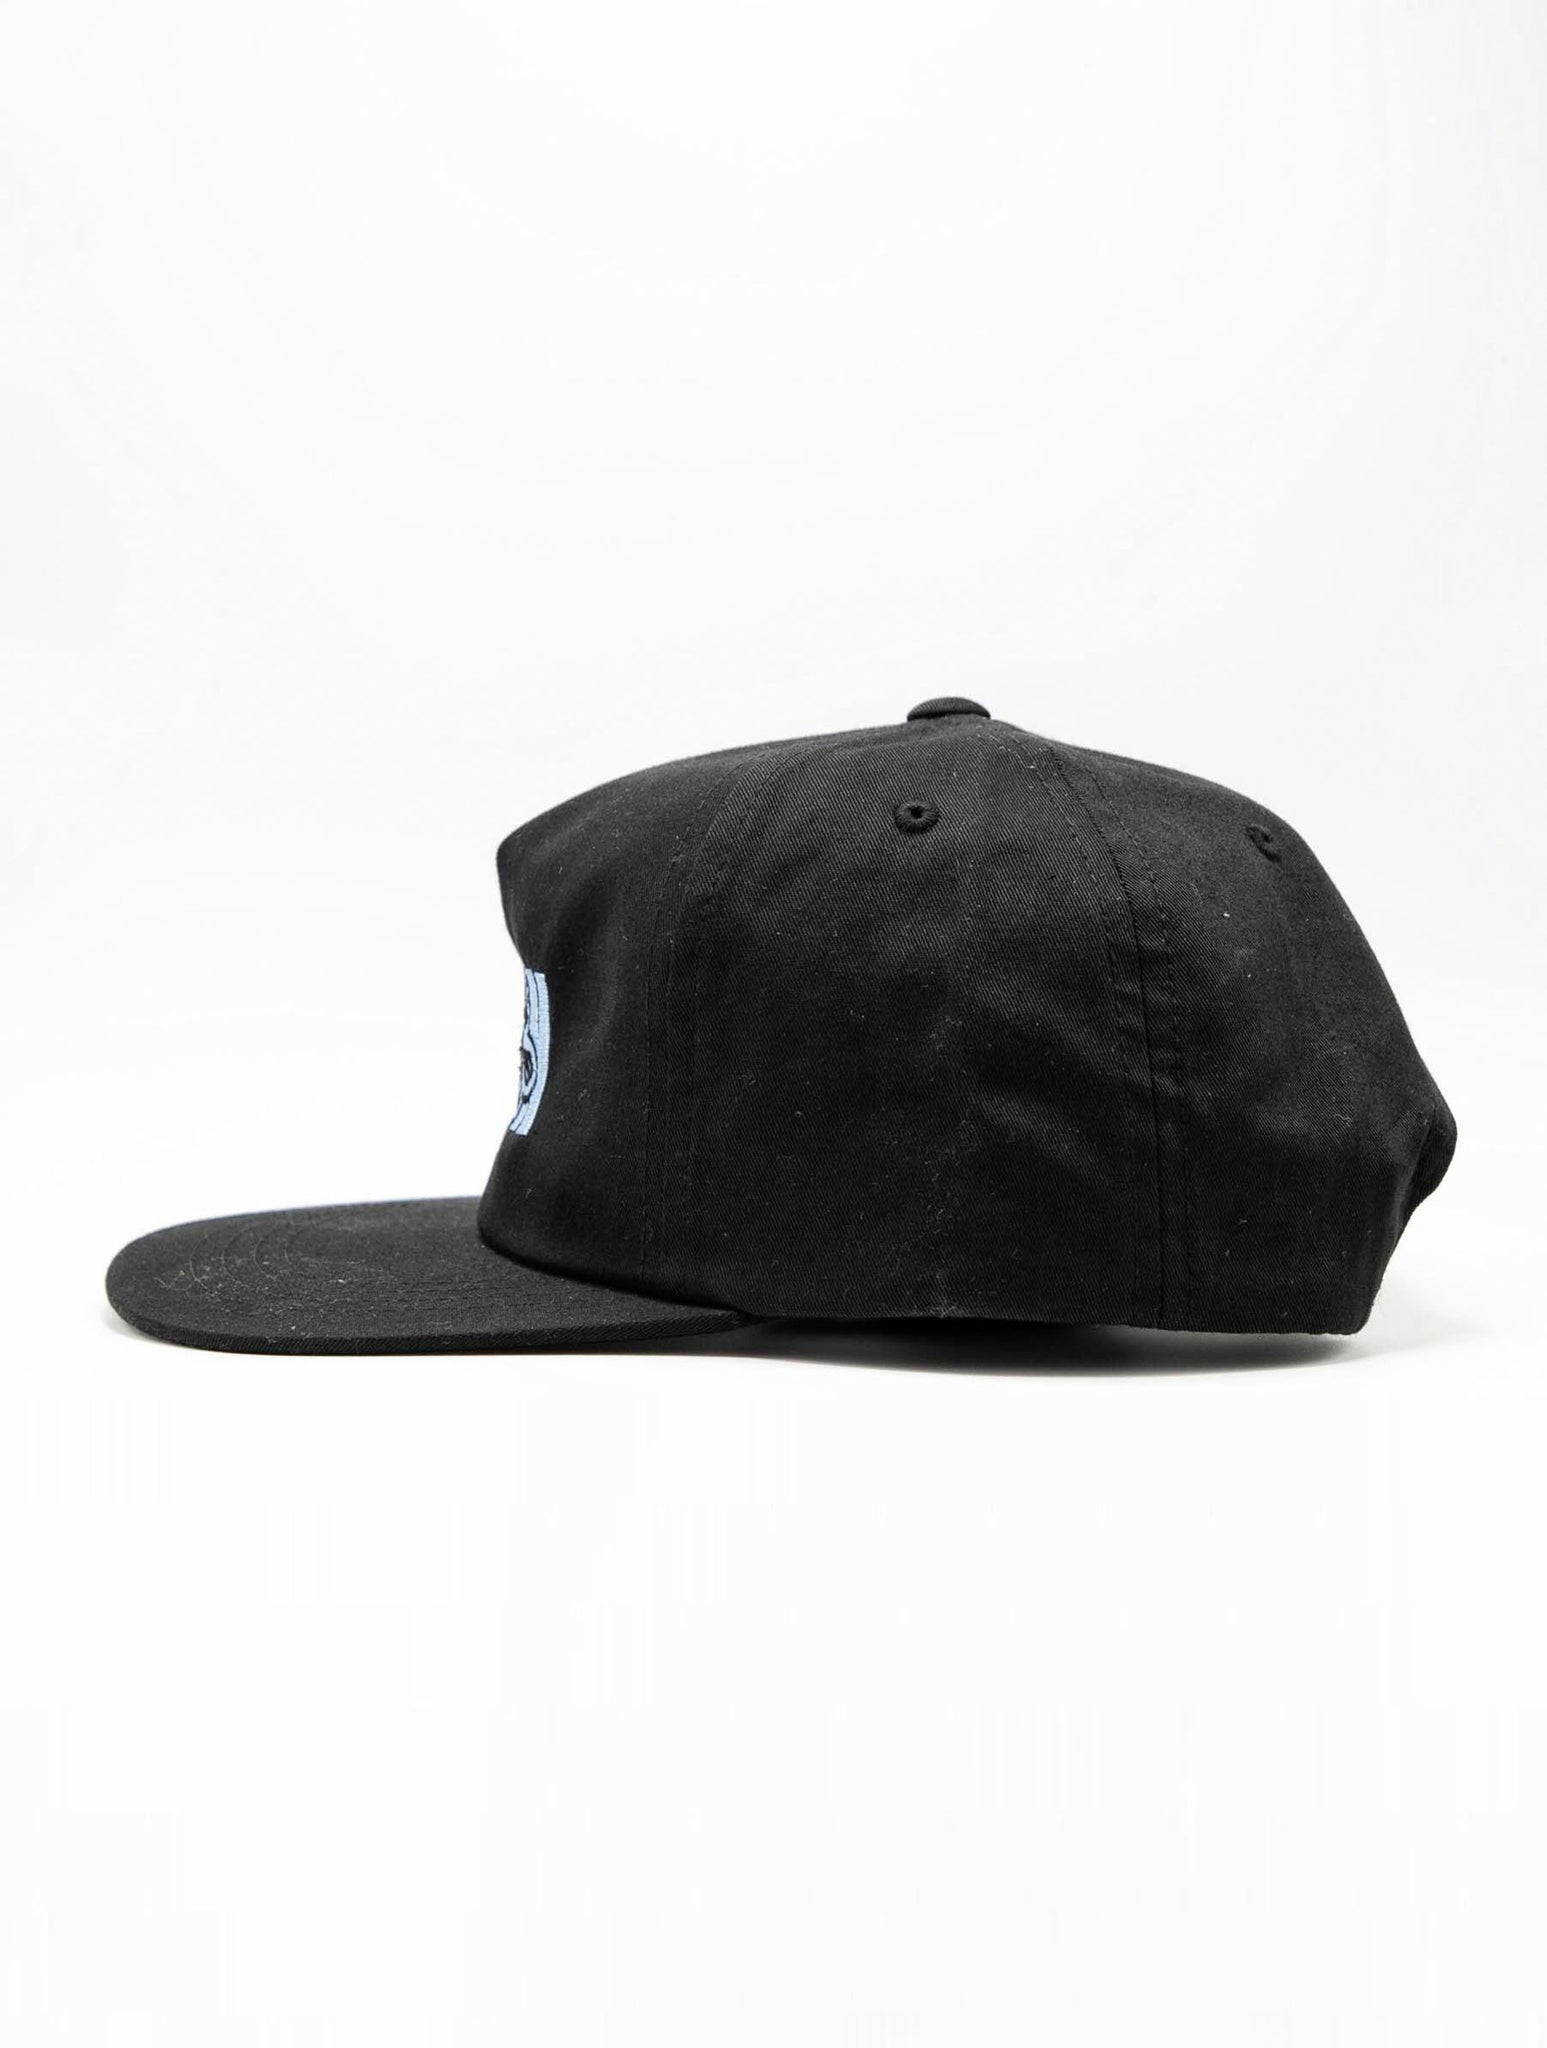 union-x-cherry-la-hat